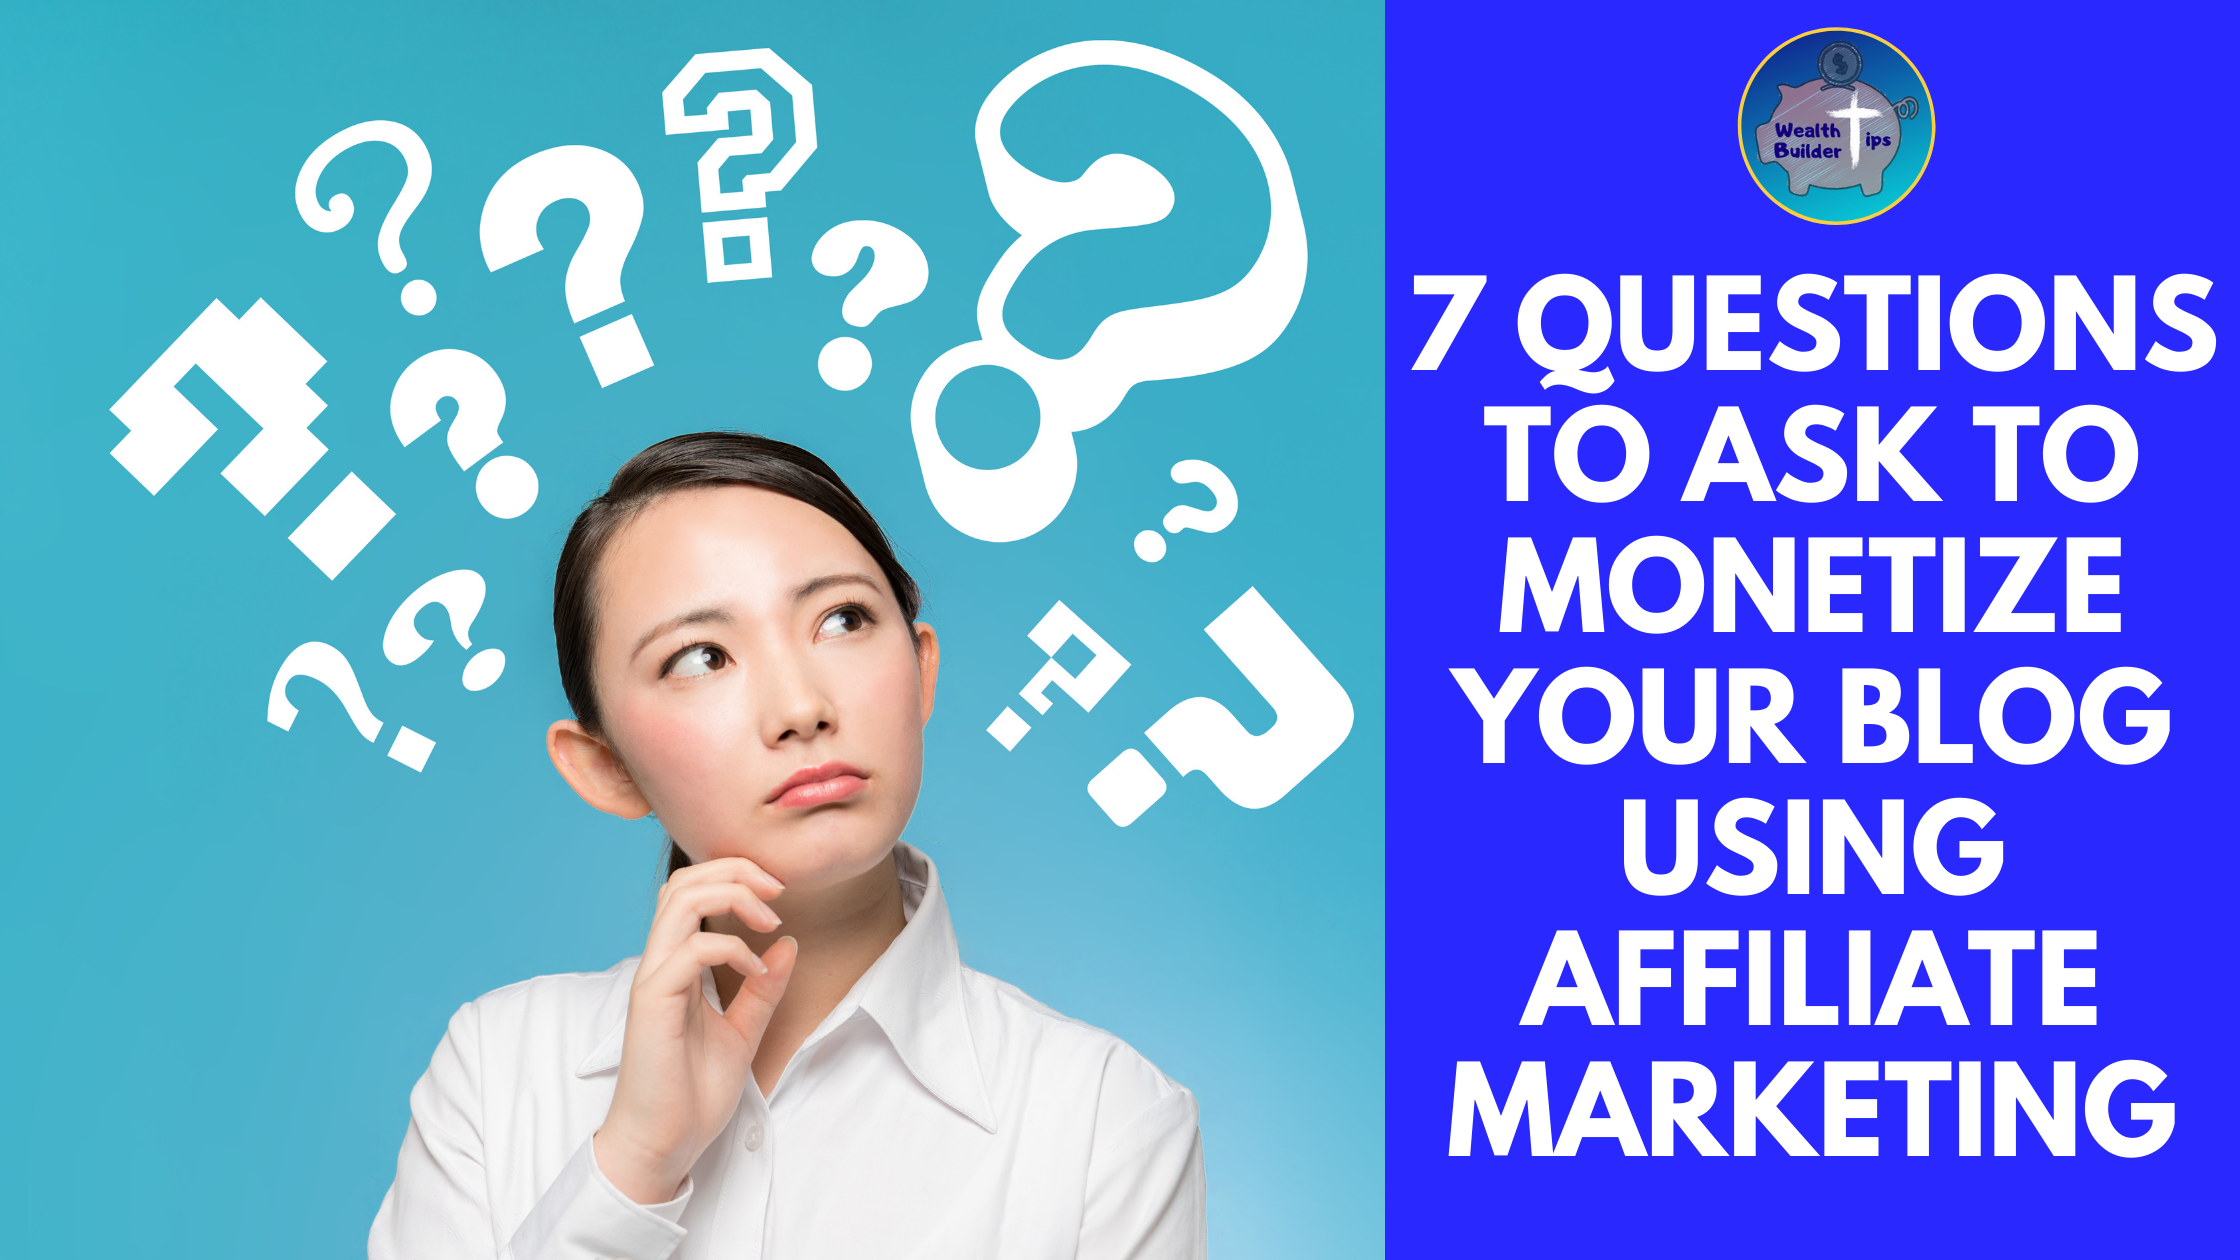 7 questions to ask to monetize your blog using affiliate marketing